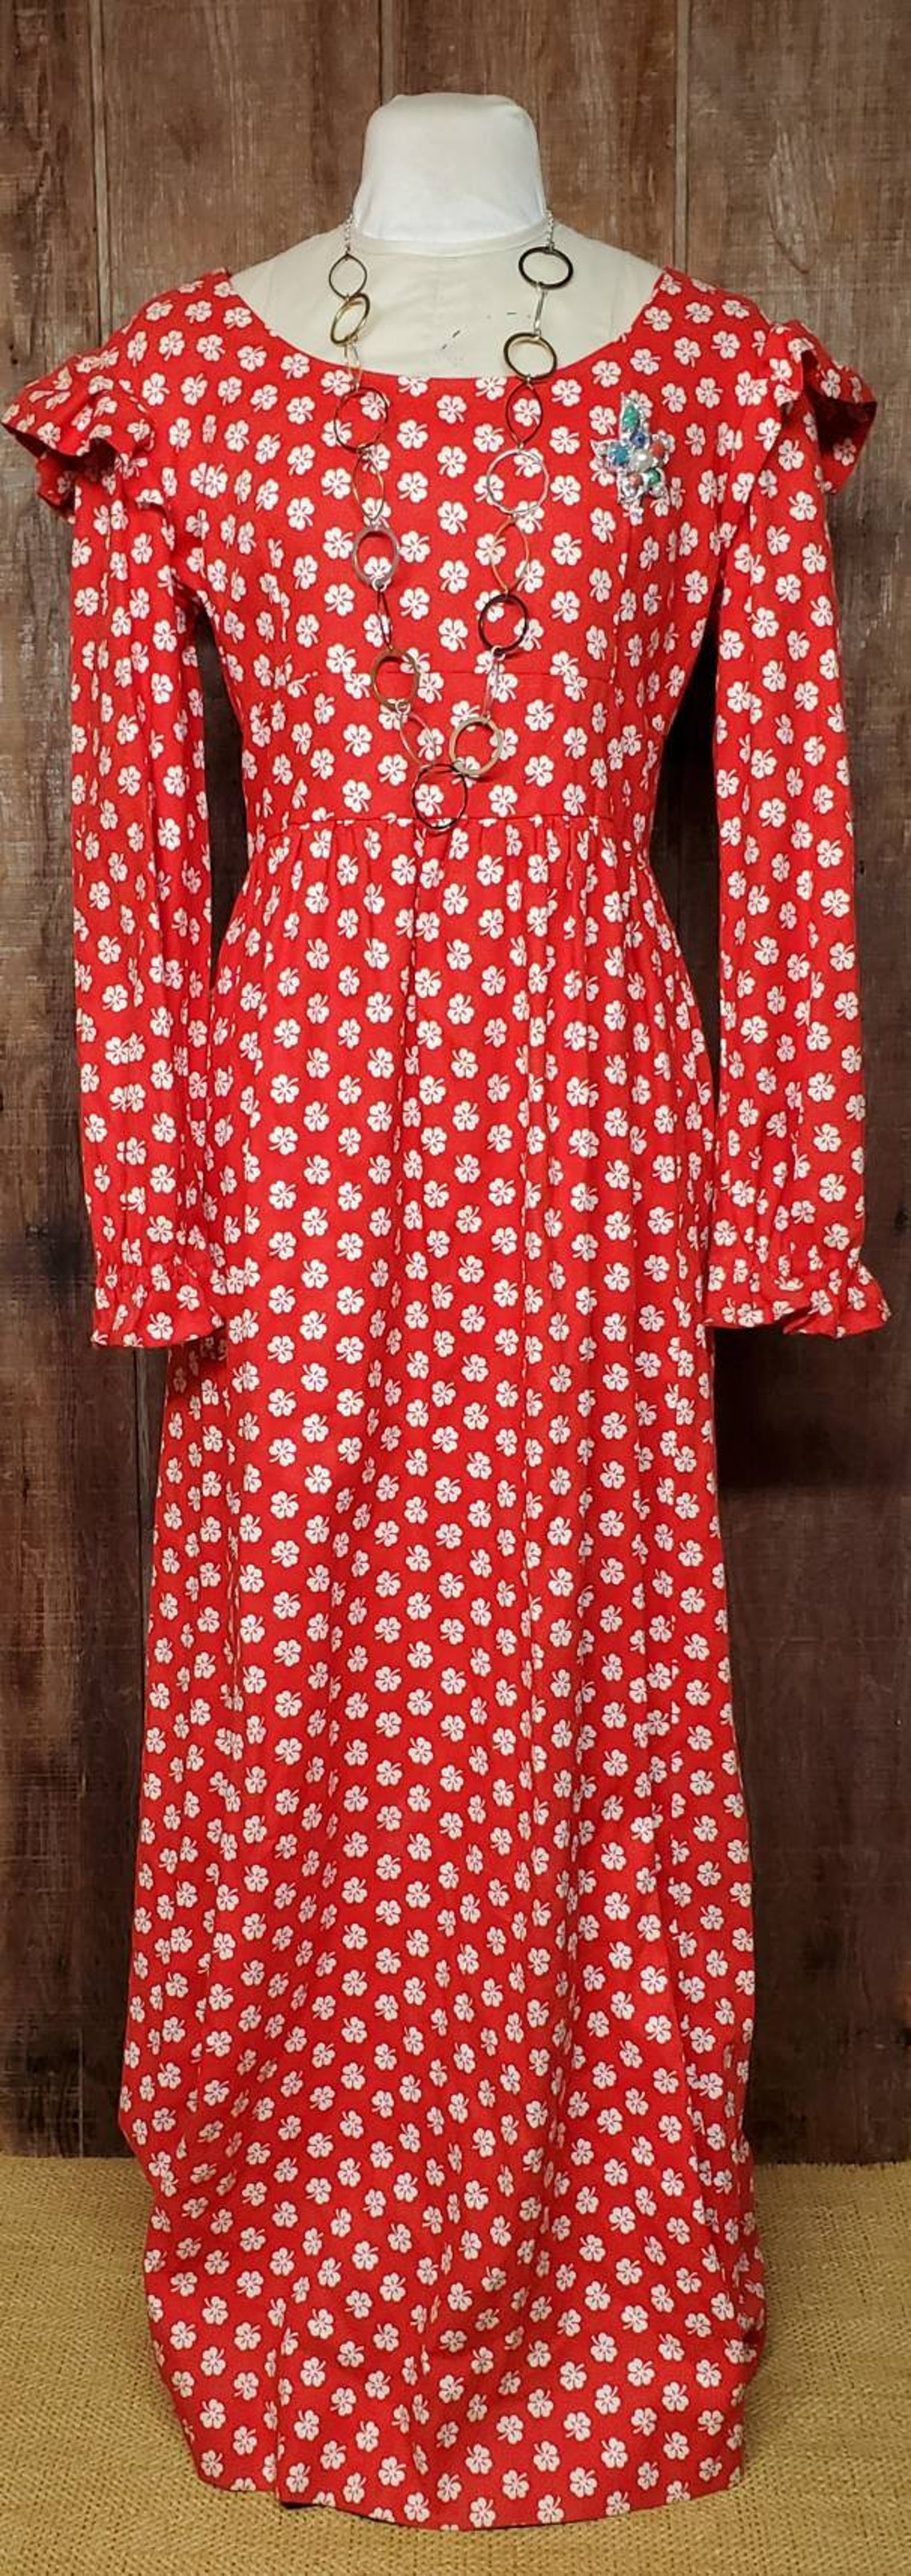 Funky 1970s Red and White Dress